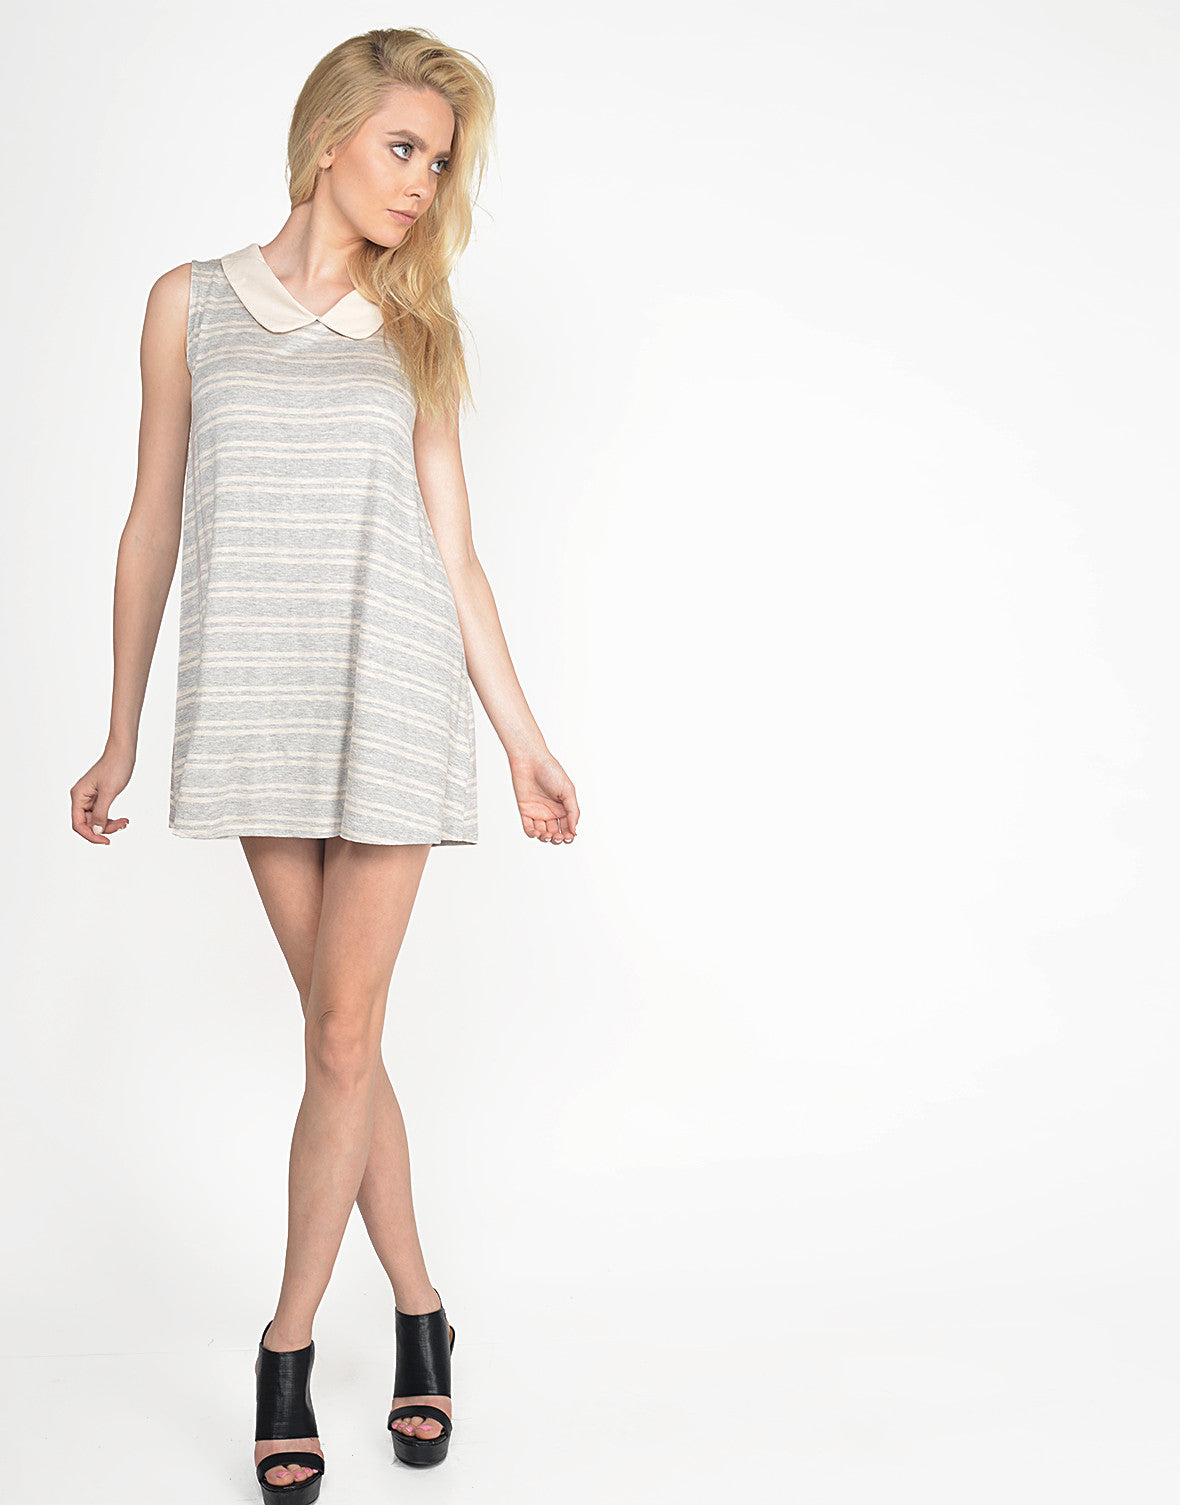 Peter Pan Collar Striped Dress - Small